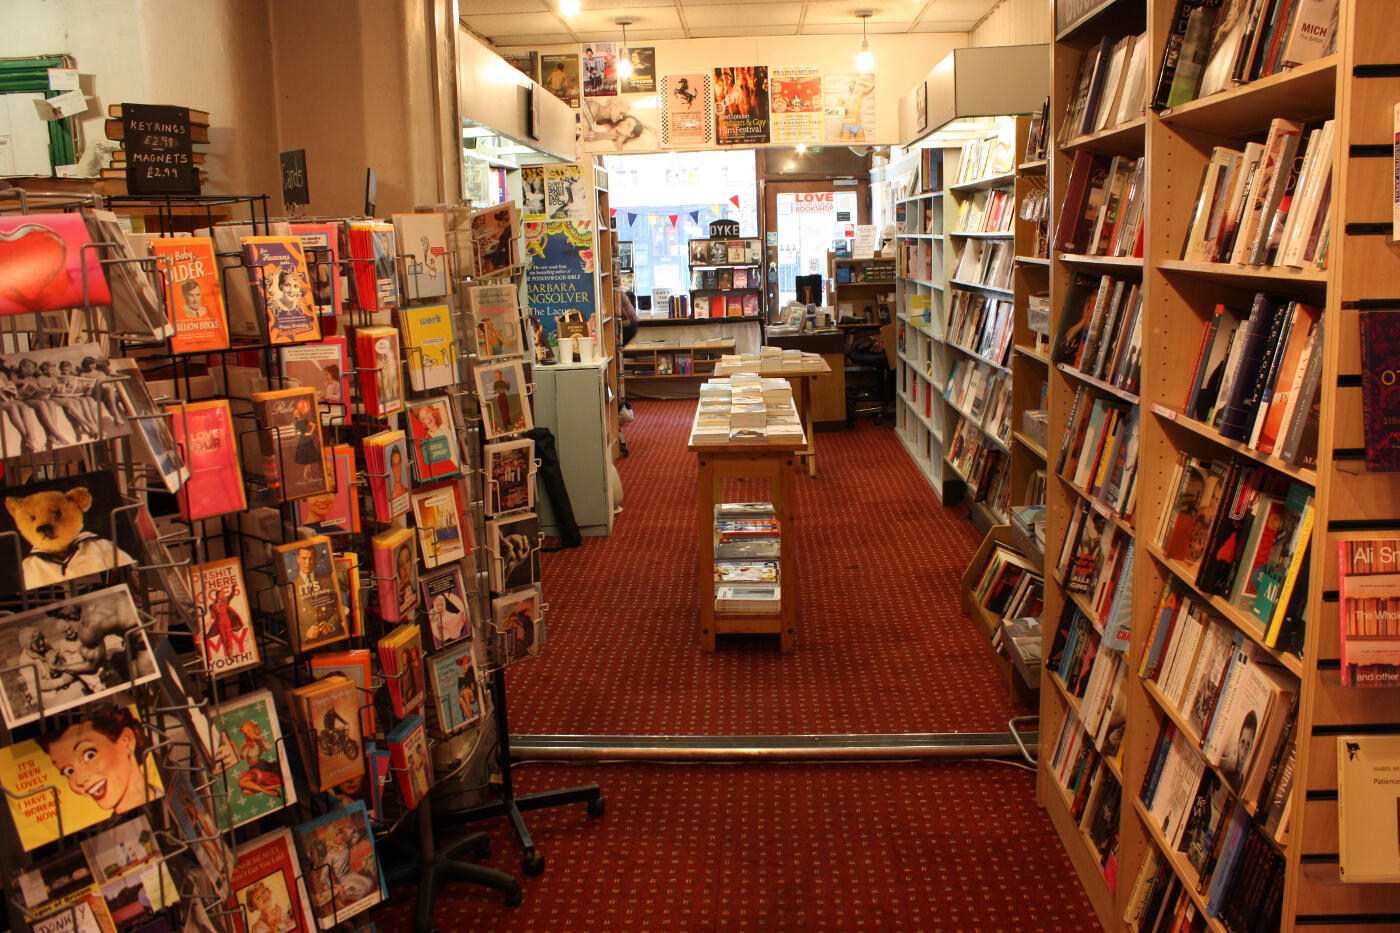 Sex listings gay bathhouse bookstores